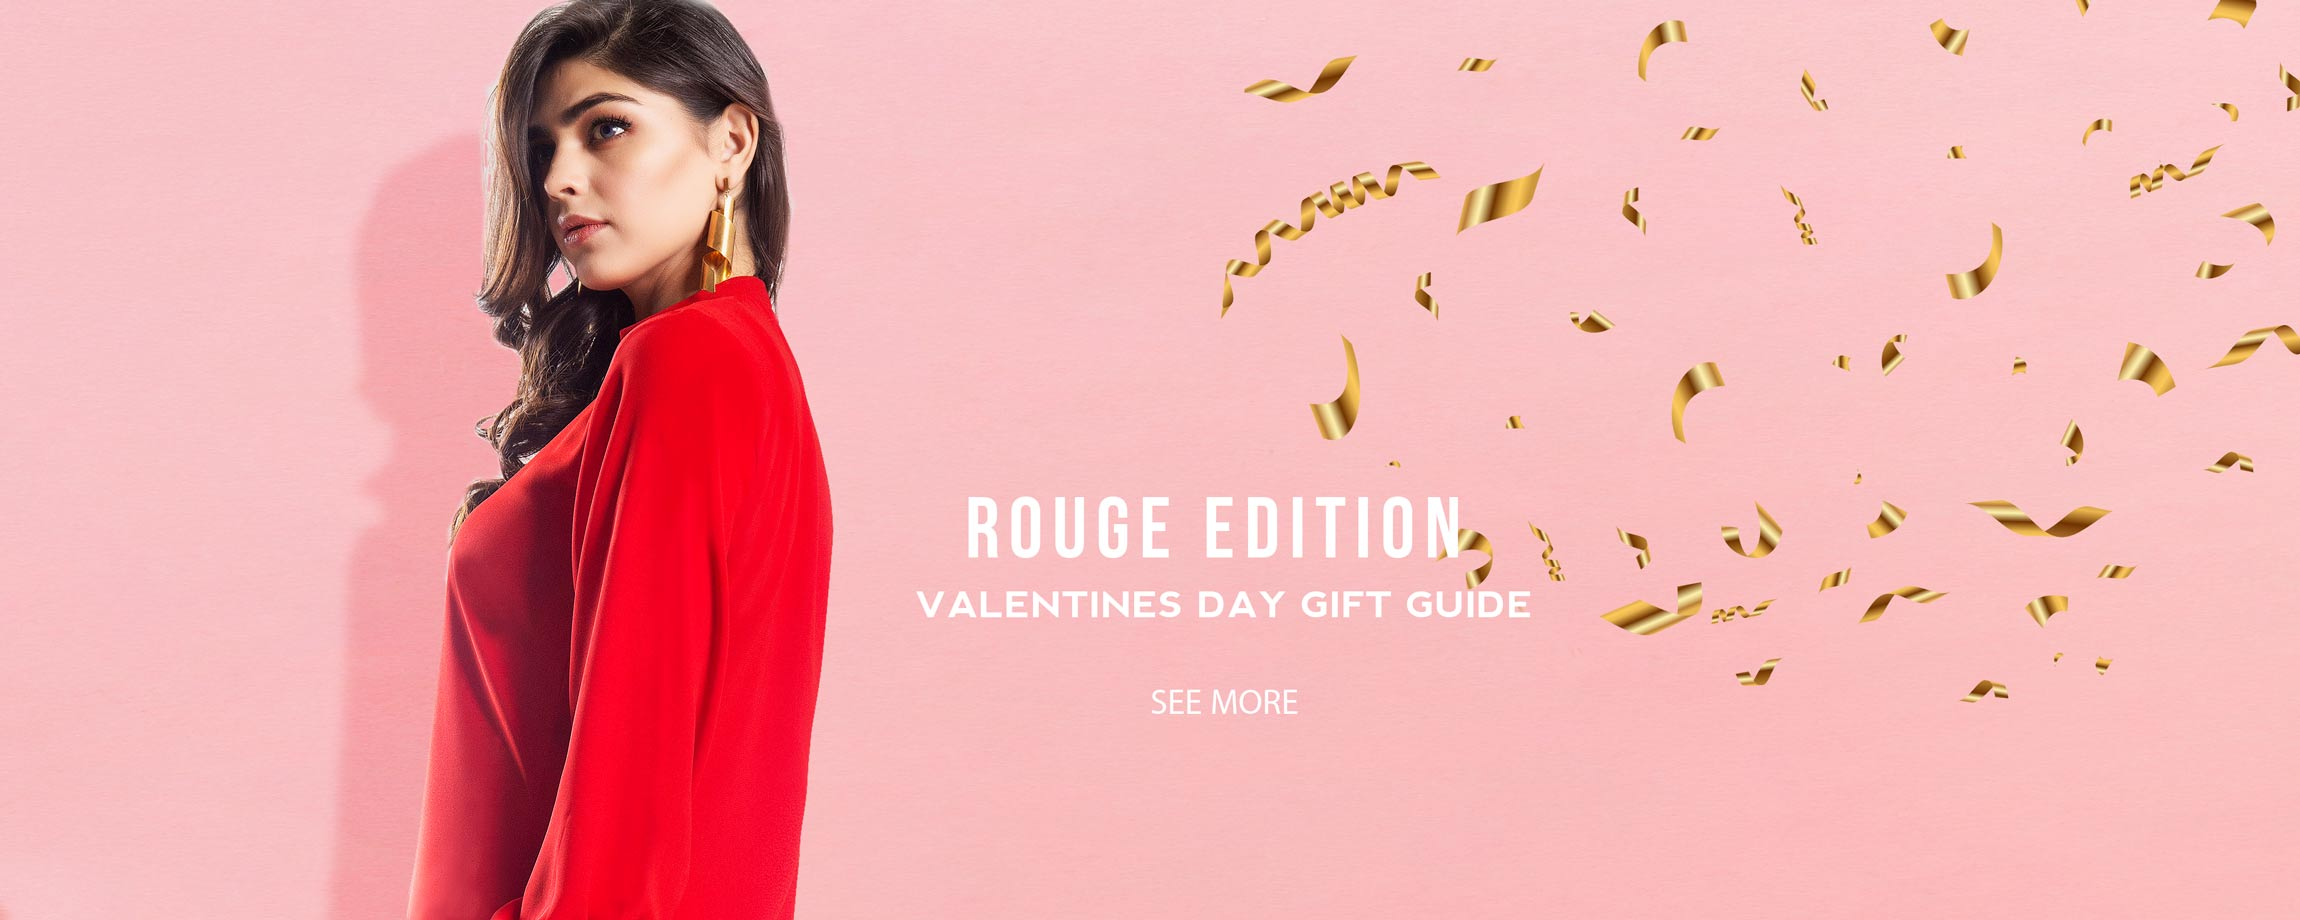 ROUGE EDITION